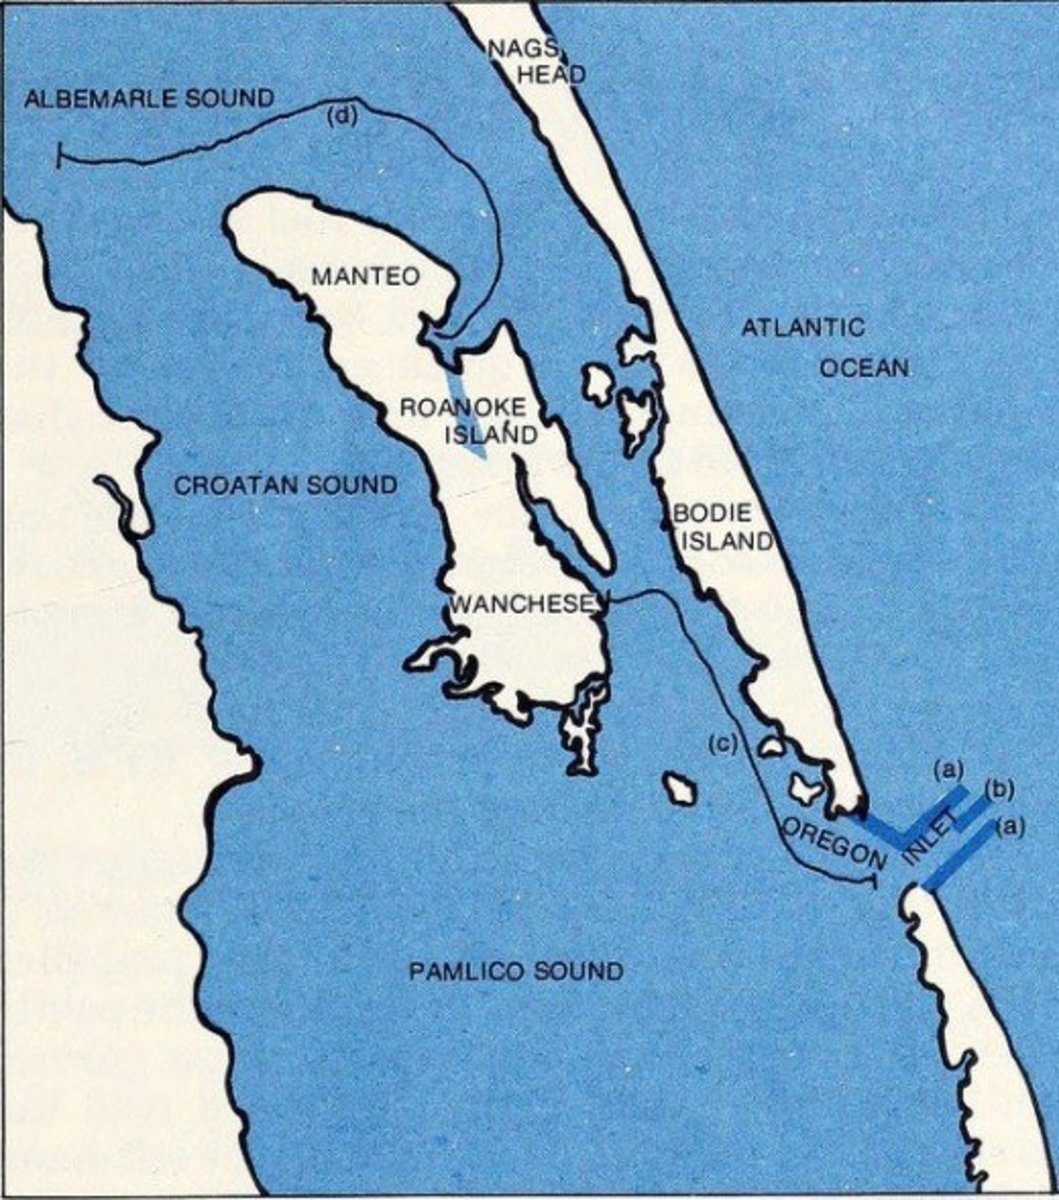 Hatteras Island is at the lower right (southeast) corner of the photo and the island is at least 42 miles long, leading to Cape Hatteras. Arrows and letters a.b.c.d. indicate possible boat or canoe routes. Route 12 extends down to the cape.